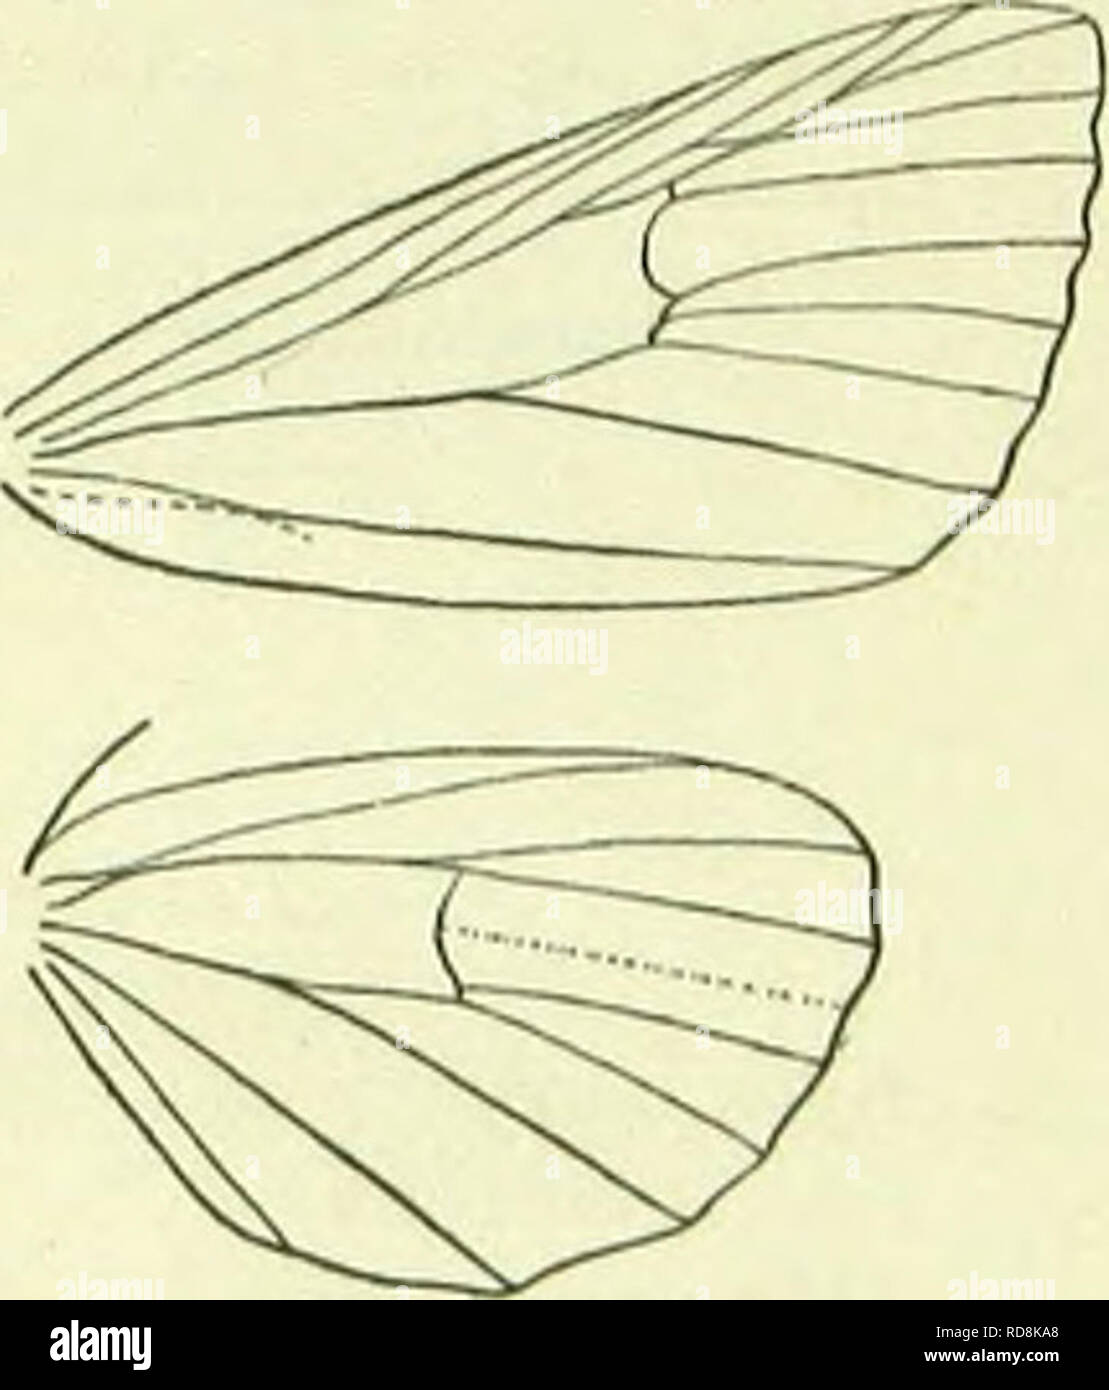 . A handbook of British lepidoptera. Lepidoptera. cai.limokpha] ARCTIADAE and S. Europe, W. Asia; 8. Larva purplish, tubercles ochreous, hairs light brown ; dorsal line broad, ochreous, darker-edged ; spiraoular white, irregular; head black: on Myosotis, Urtica, 1'lantayo, etc.; 9-5. 2. 6. dominula, L. 52-58 mm. Head and thorax blue-black, thorax with two dorsal orange marks. Forcwings dark indigo- green ; an orange dorsal spot near base, and two near costa before middle ; a spot in disc below middle, two or three larger posterior and some smaller subapieal spots ochrcous-whitish. Hindwings cr - Stock Image